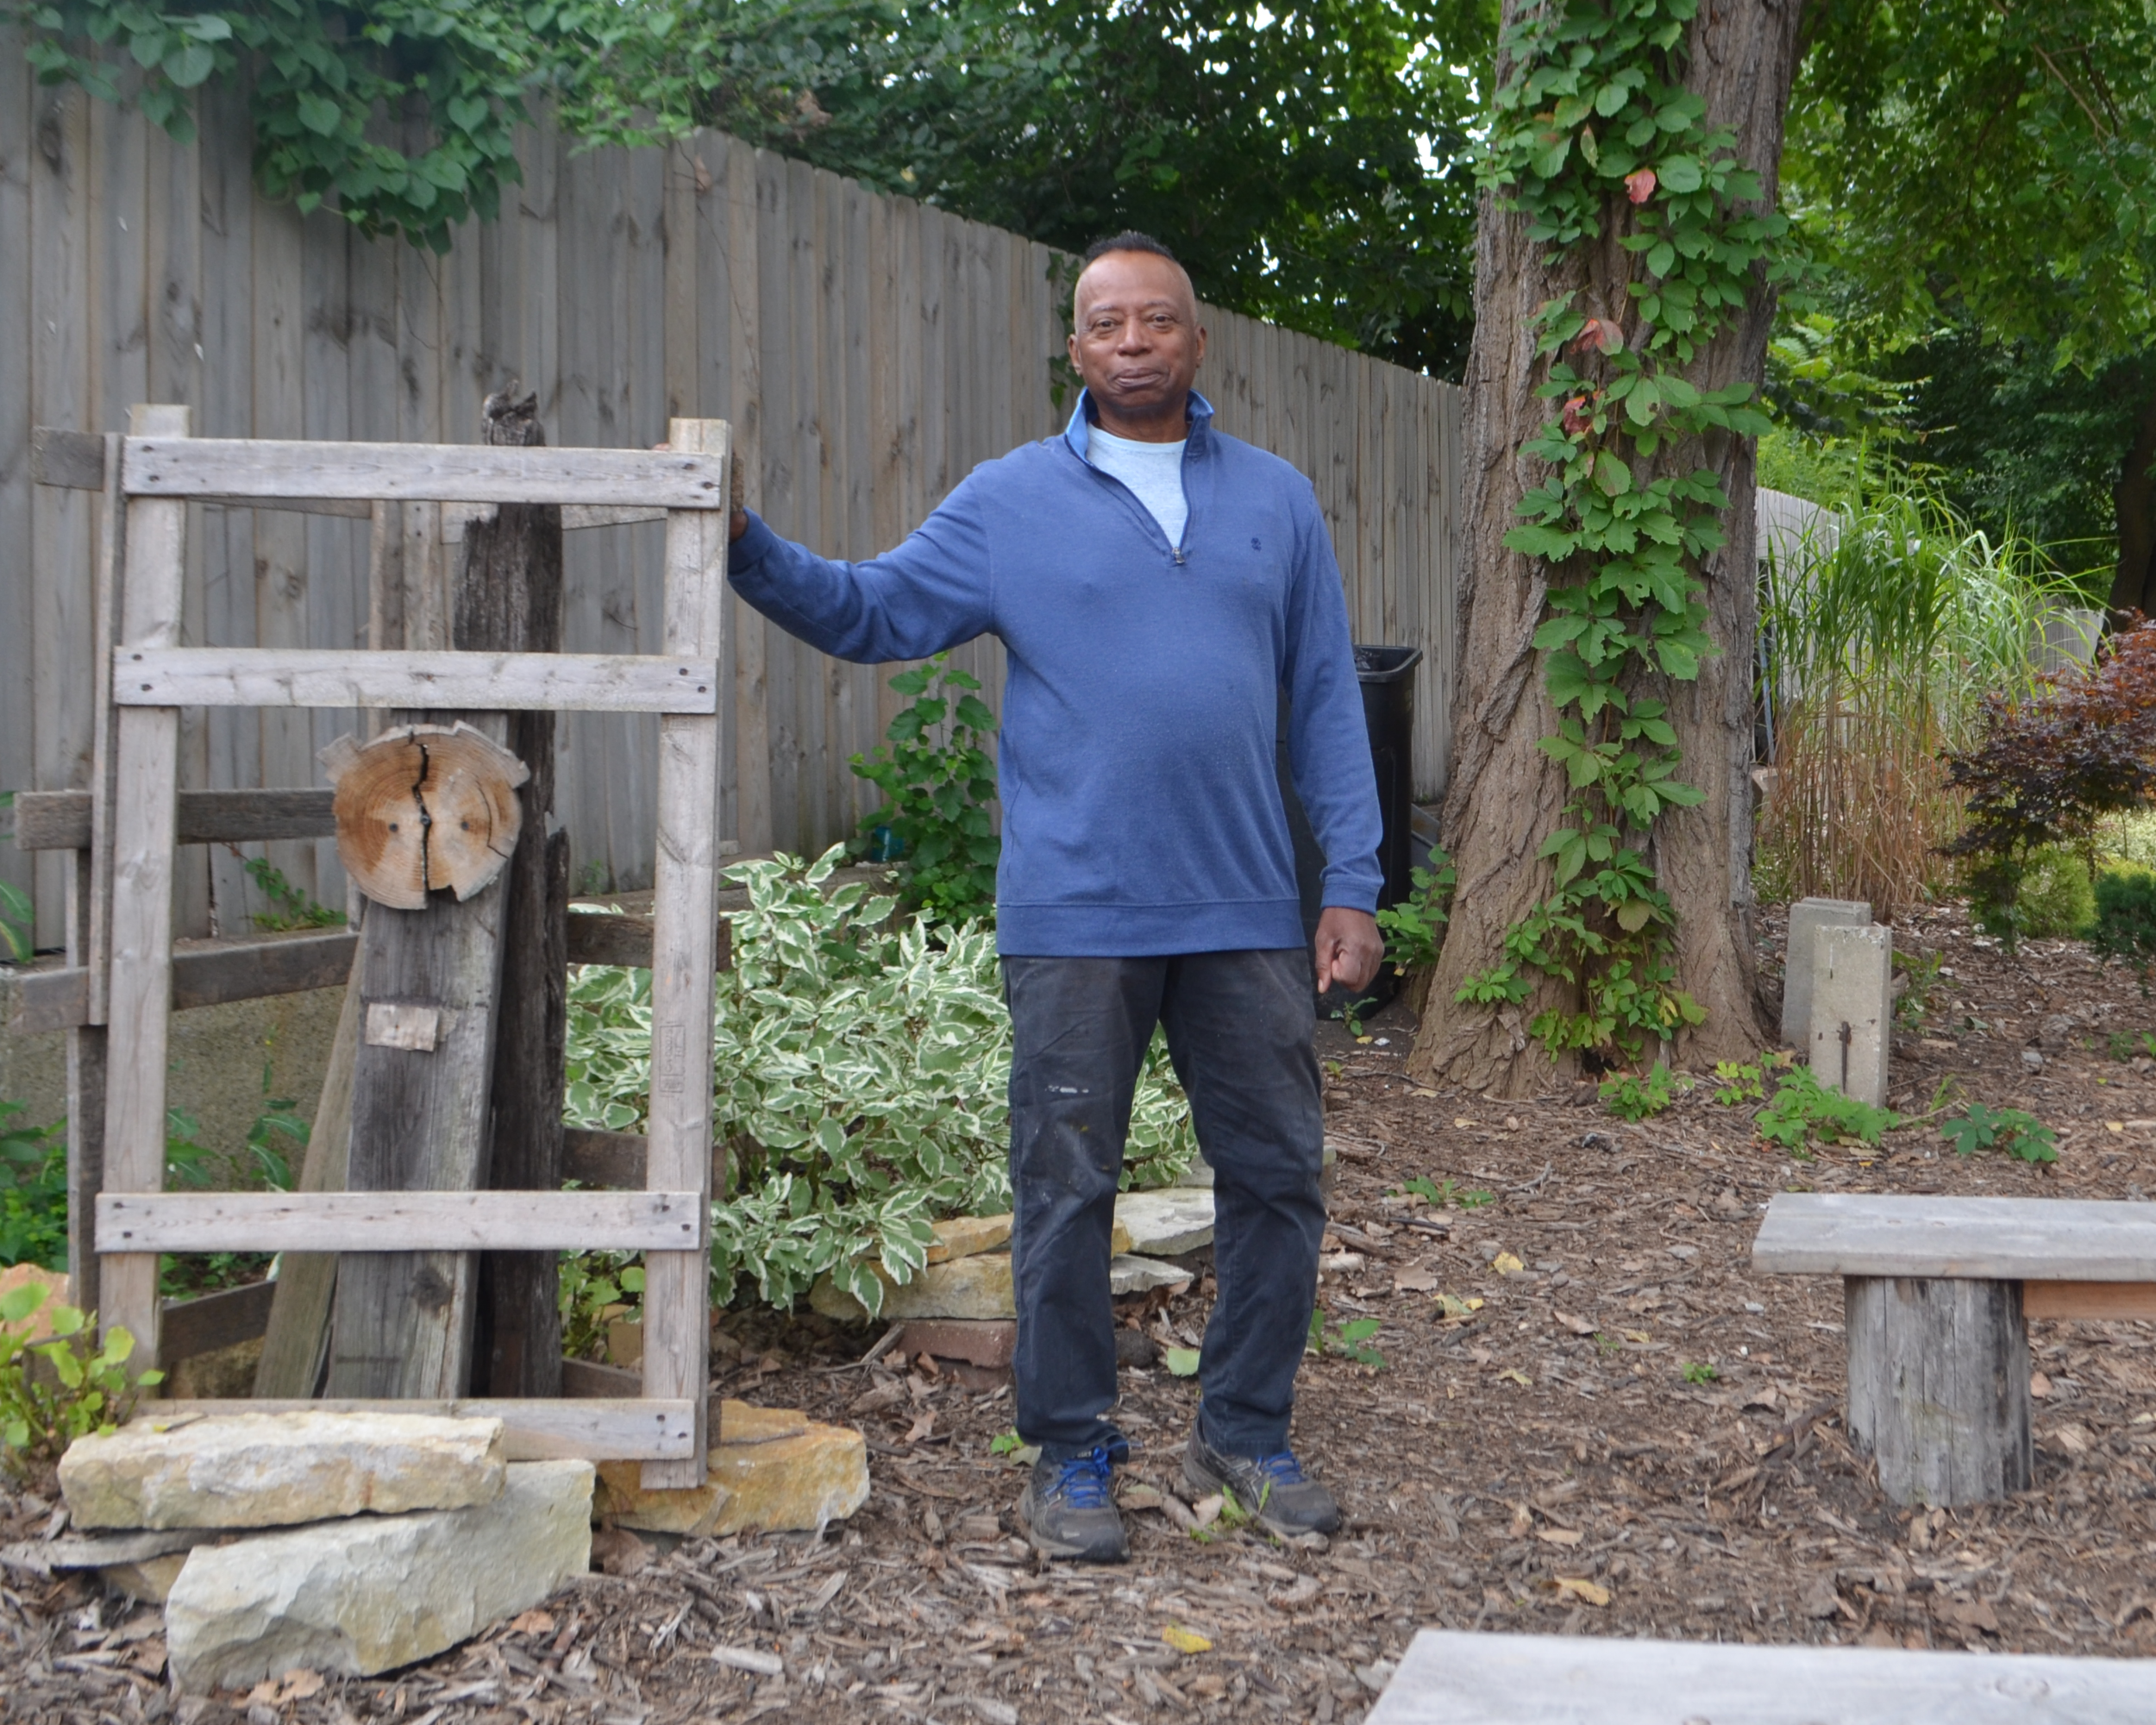 William Hill at his Dorchester Botanical Garden next to sculpture and benches he created